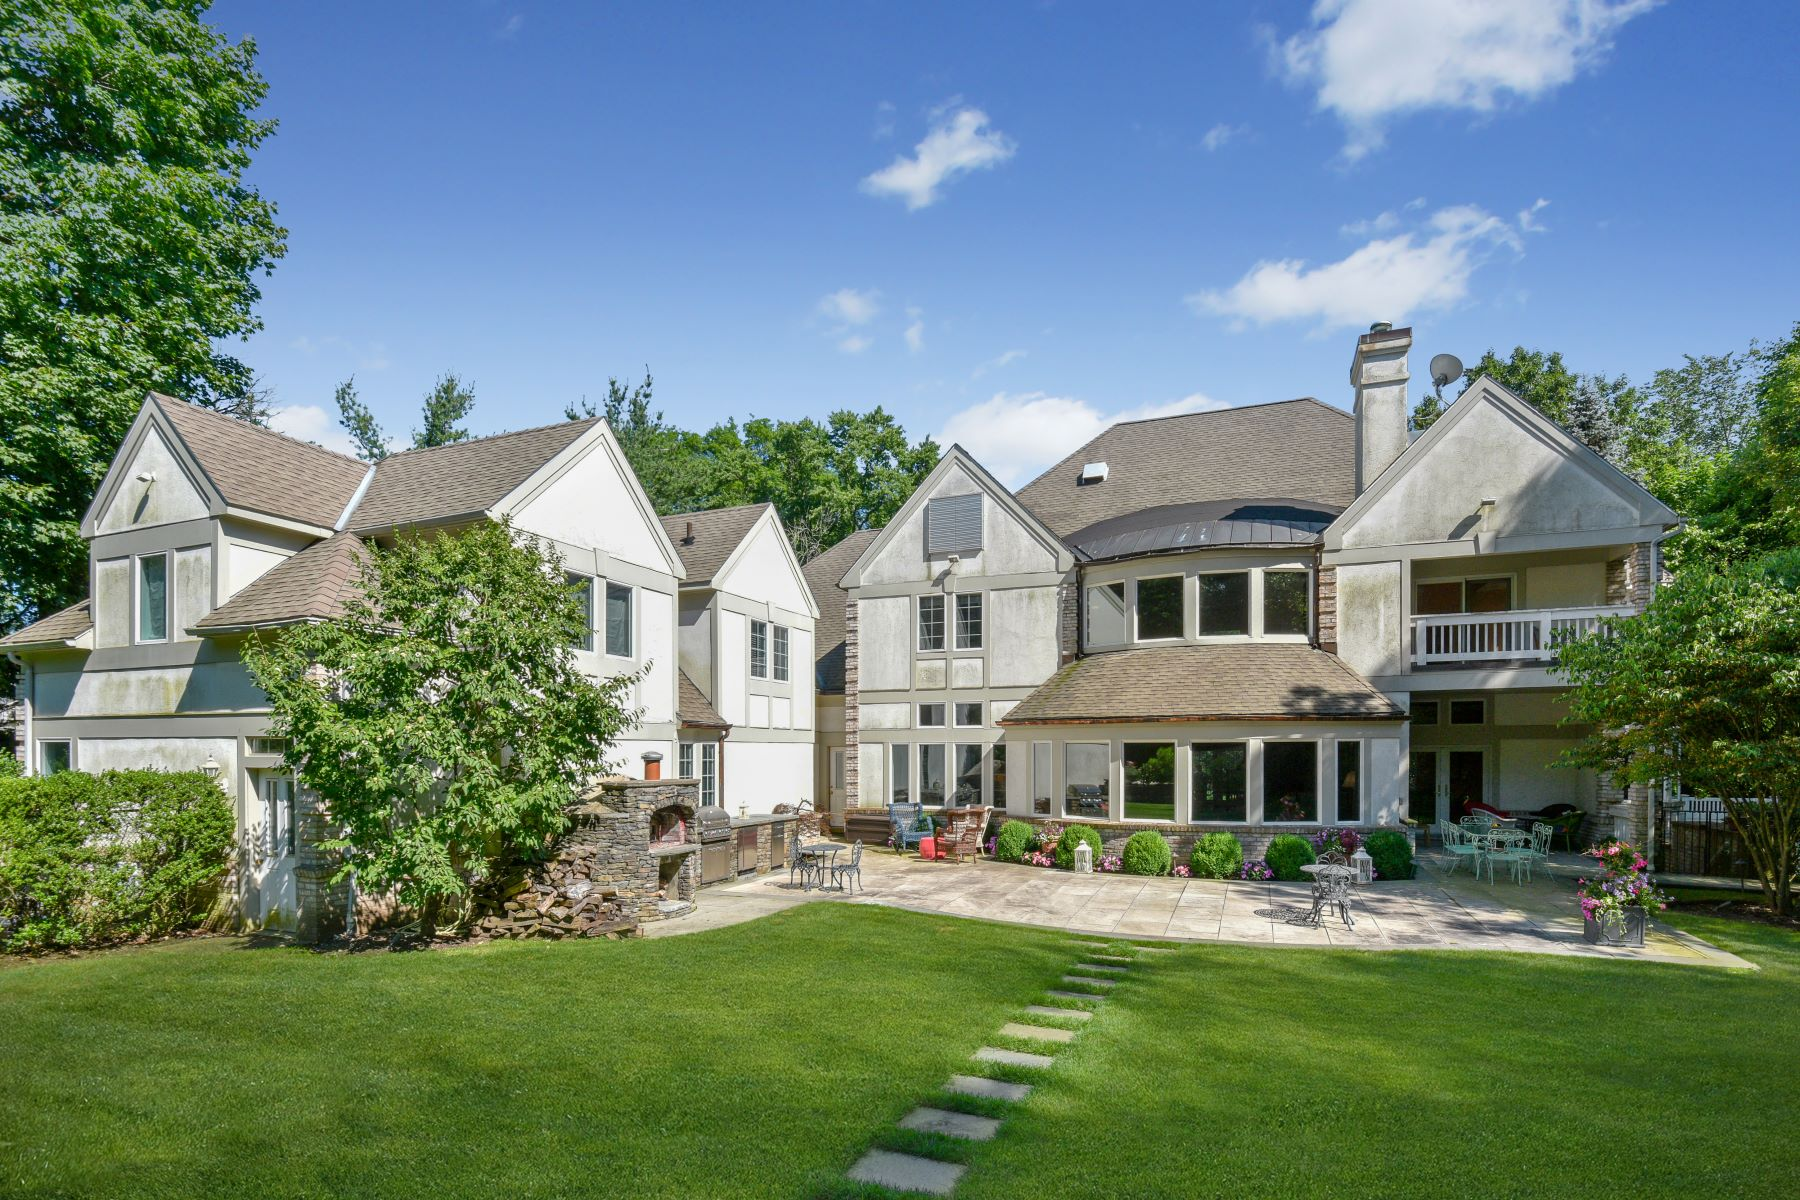 Single Family Homes for Active at Picture Perfect Colonial 15 Brookby Road Scarsdale, New York 10583 United States